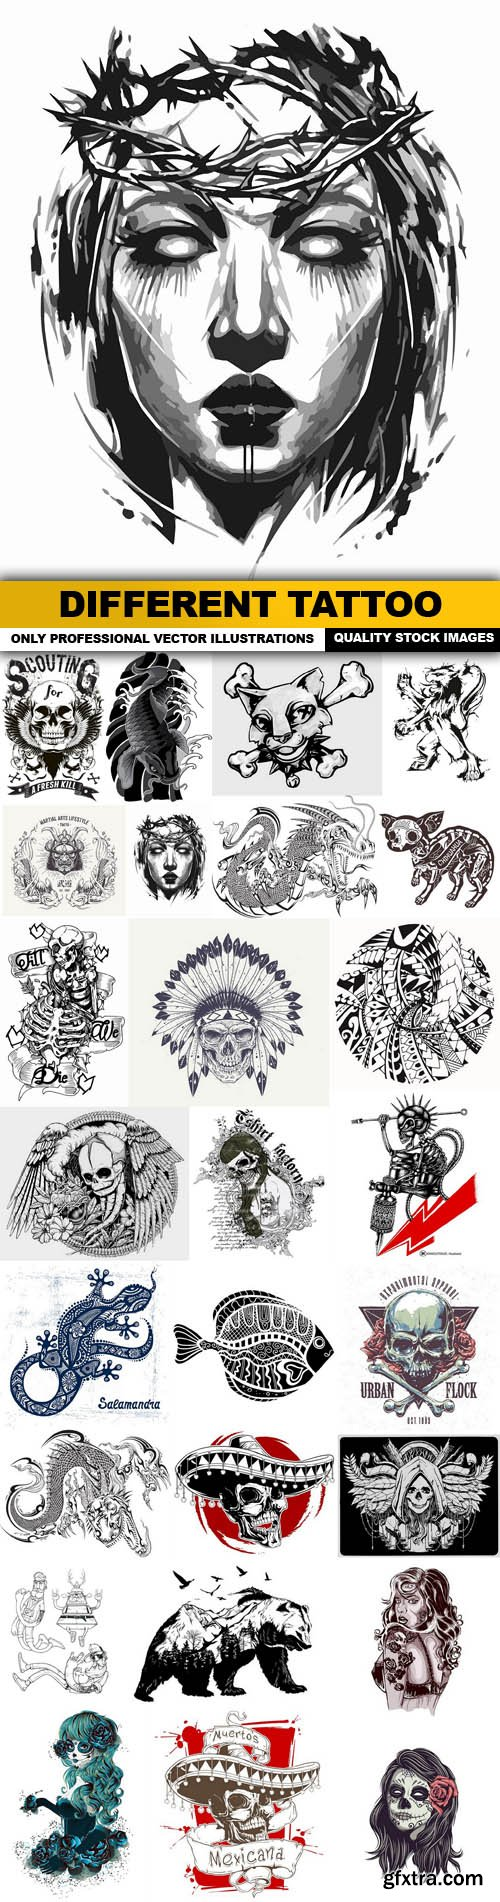 Different Tattoo - 26 Vector